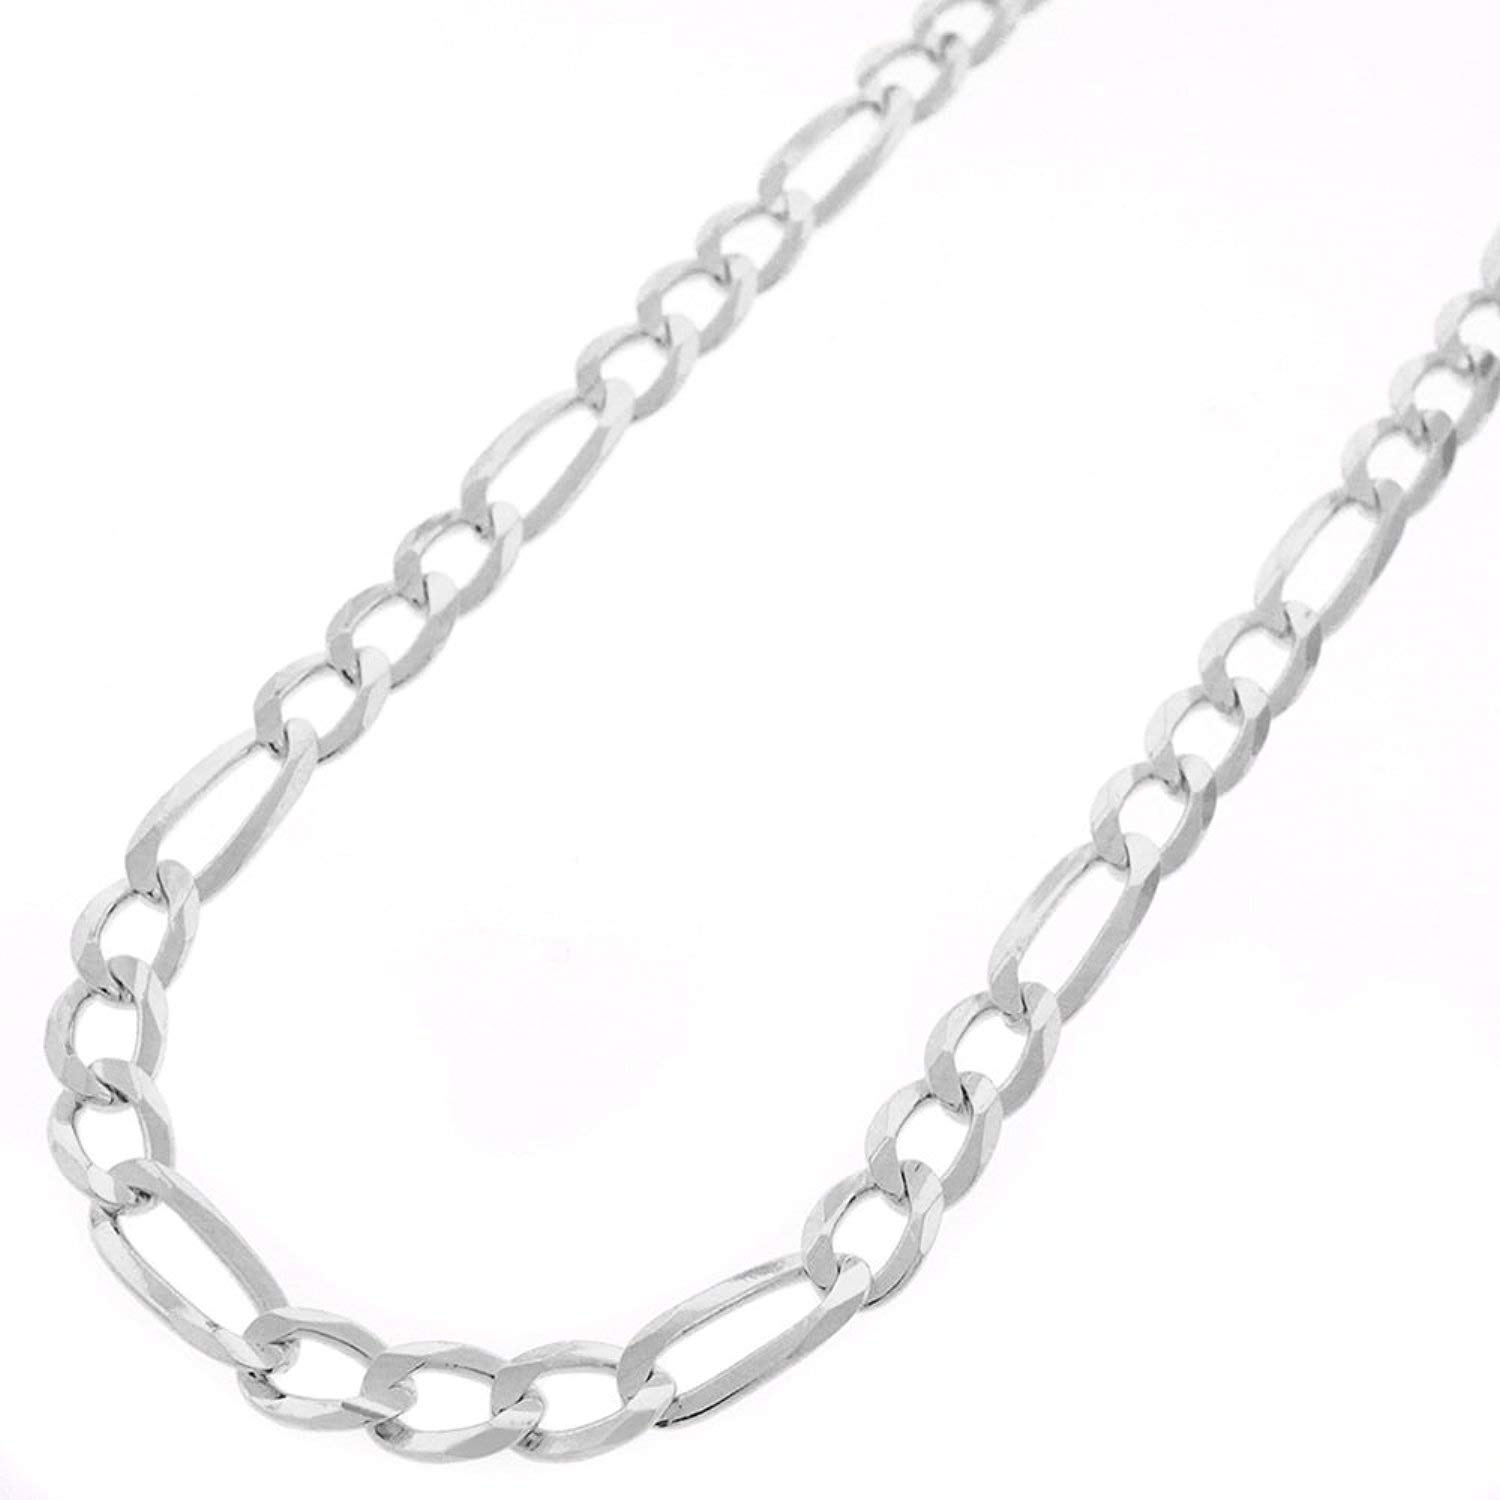 3a07152c6273c Sterling Silver Italian 5mm Figaro Link ITProLux Solid 925 Necklace ...